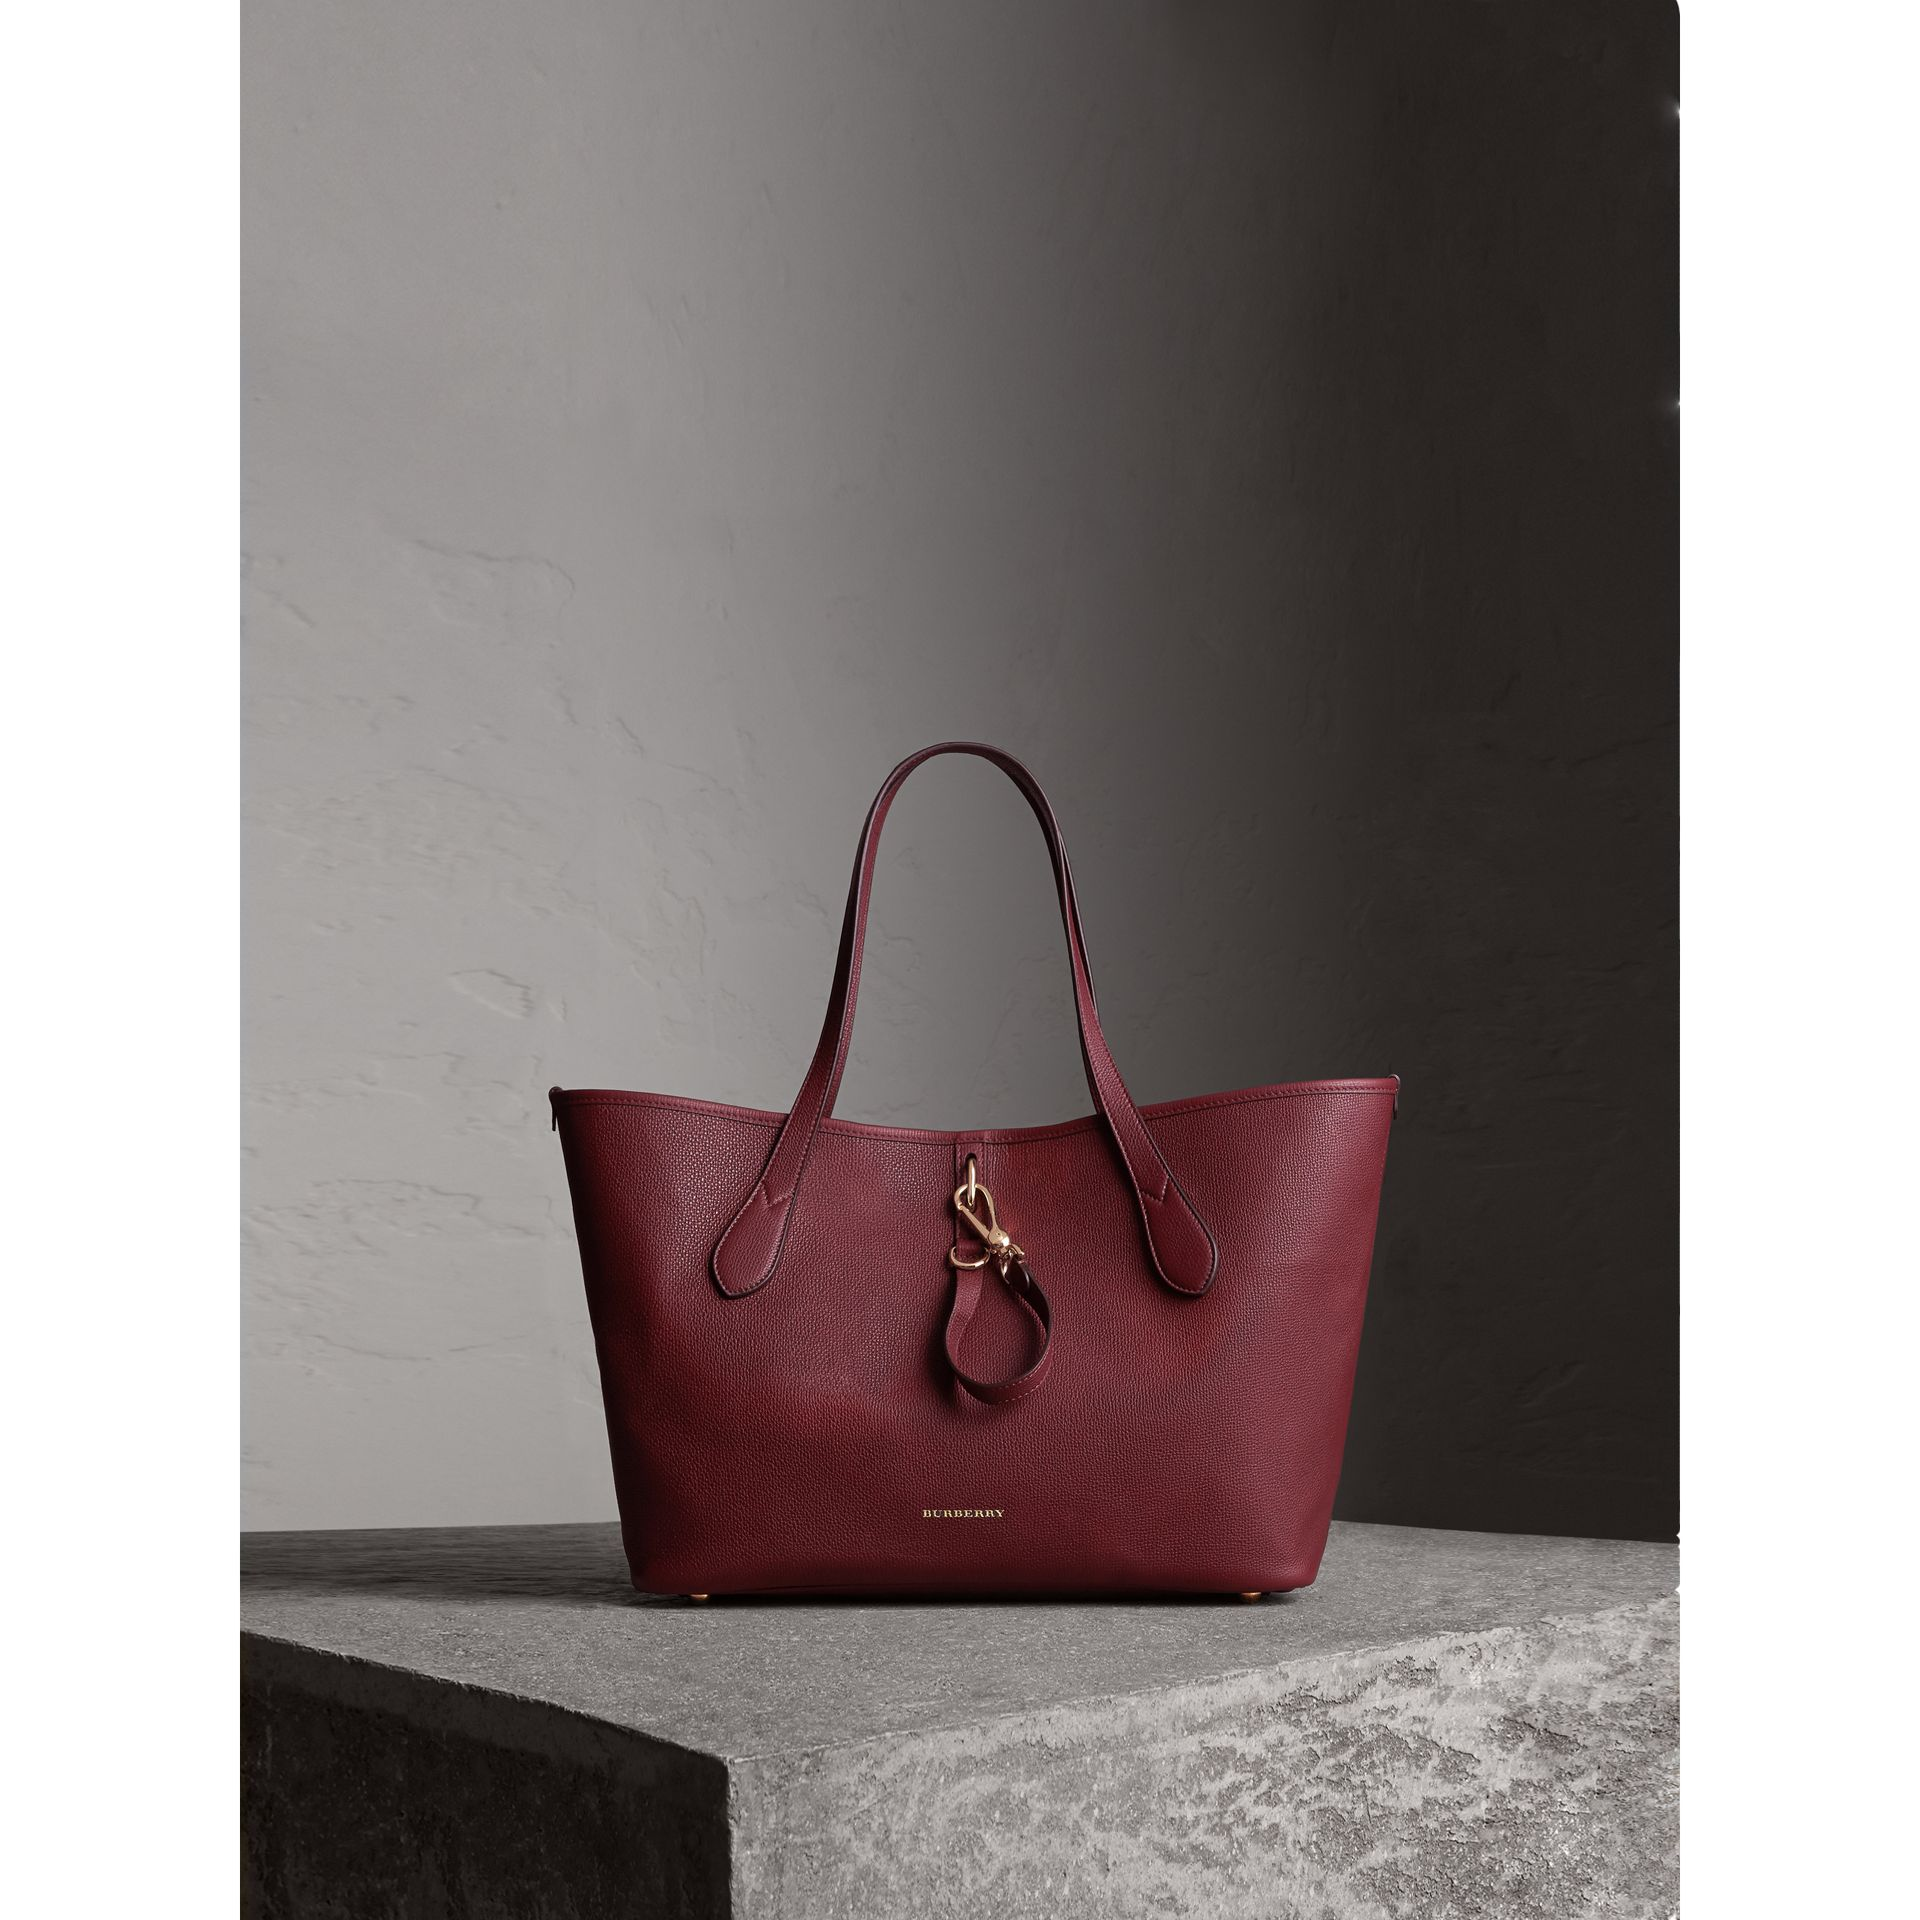 Medium Grainy Leather Tote Bag in Mahogany Red - Women | Burberry United States - gallery image 1